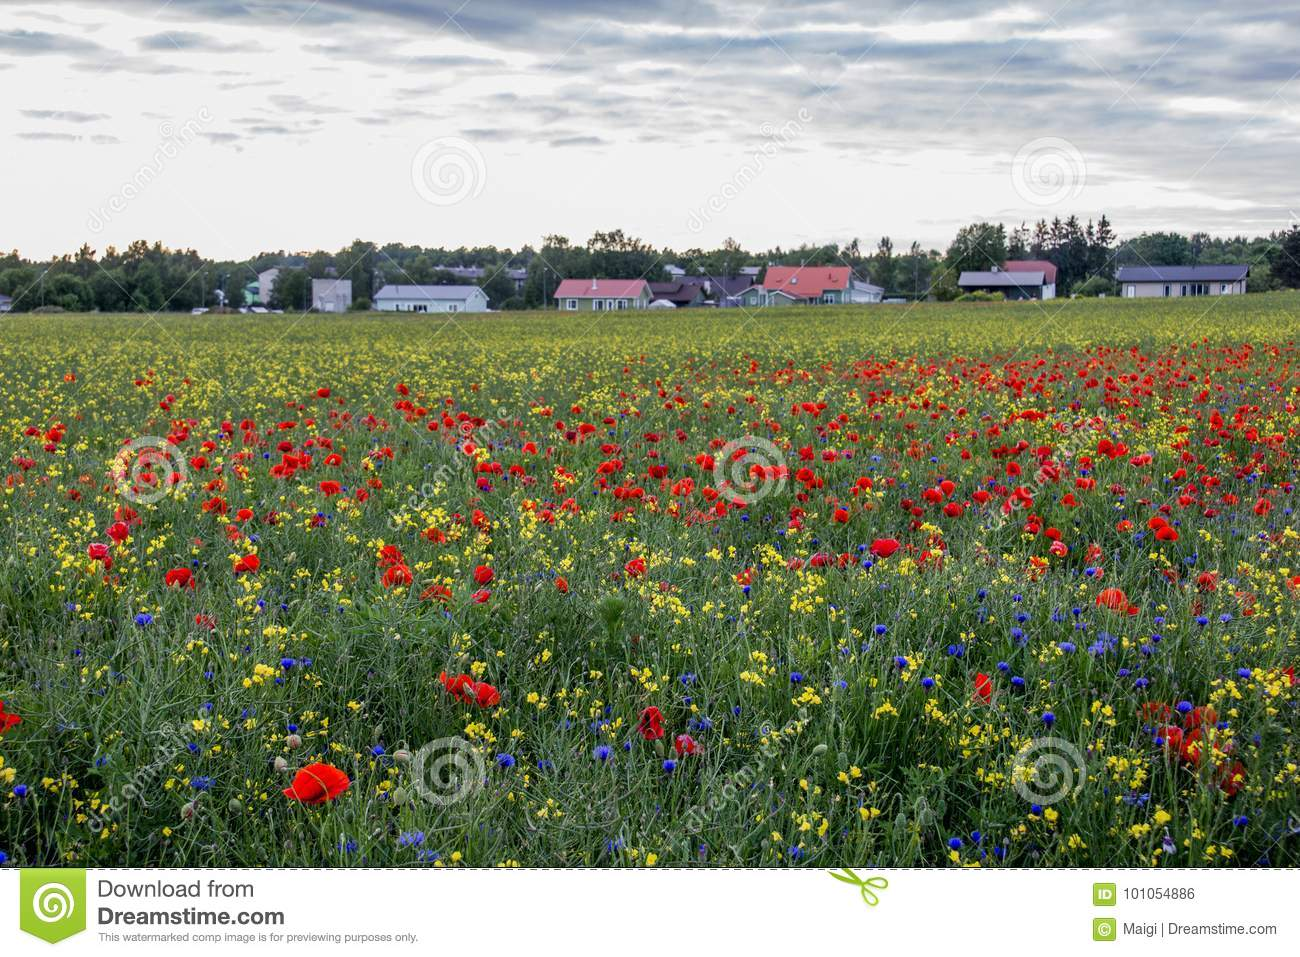 Countryside with beautiful poppy field